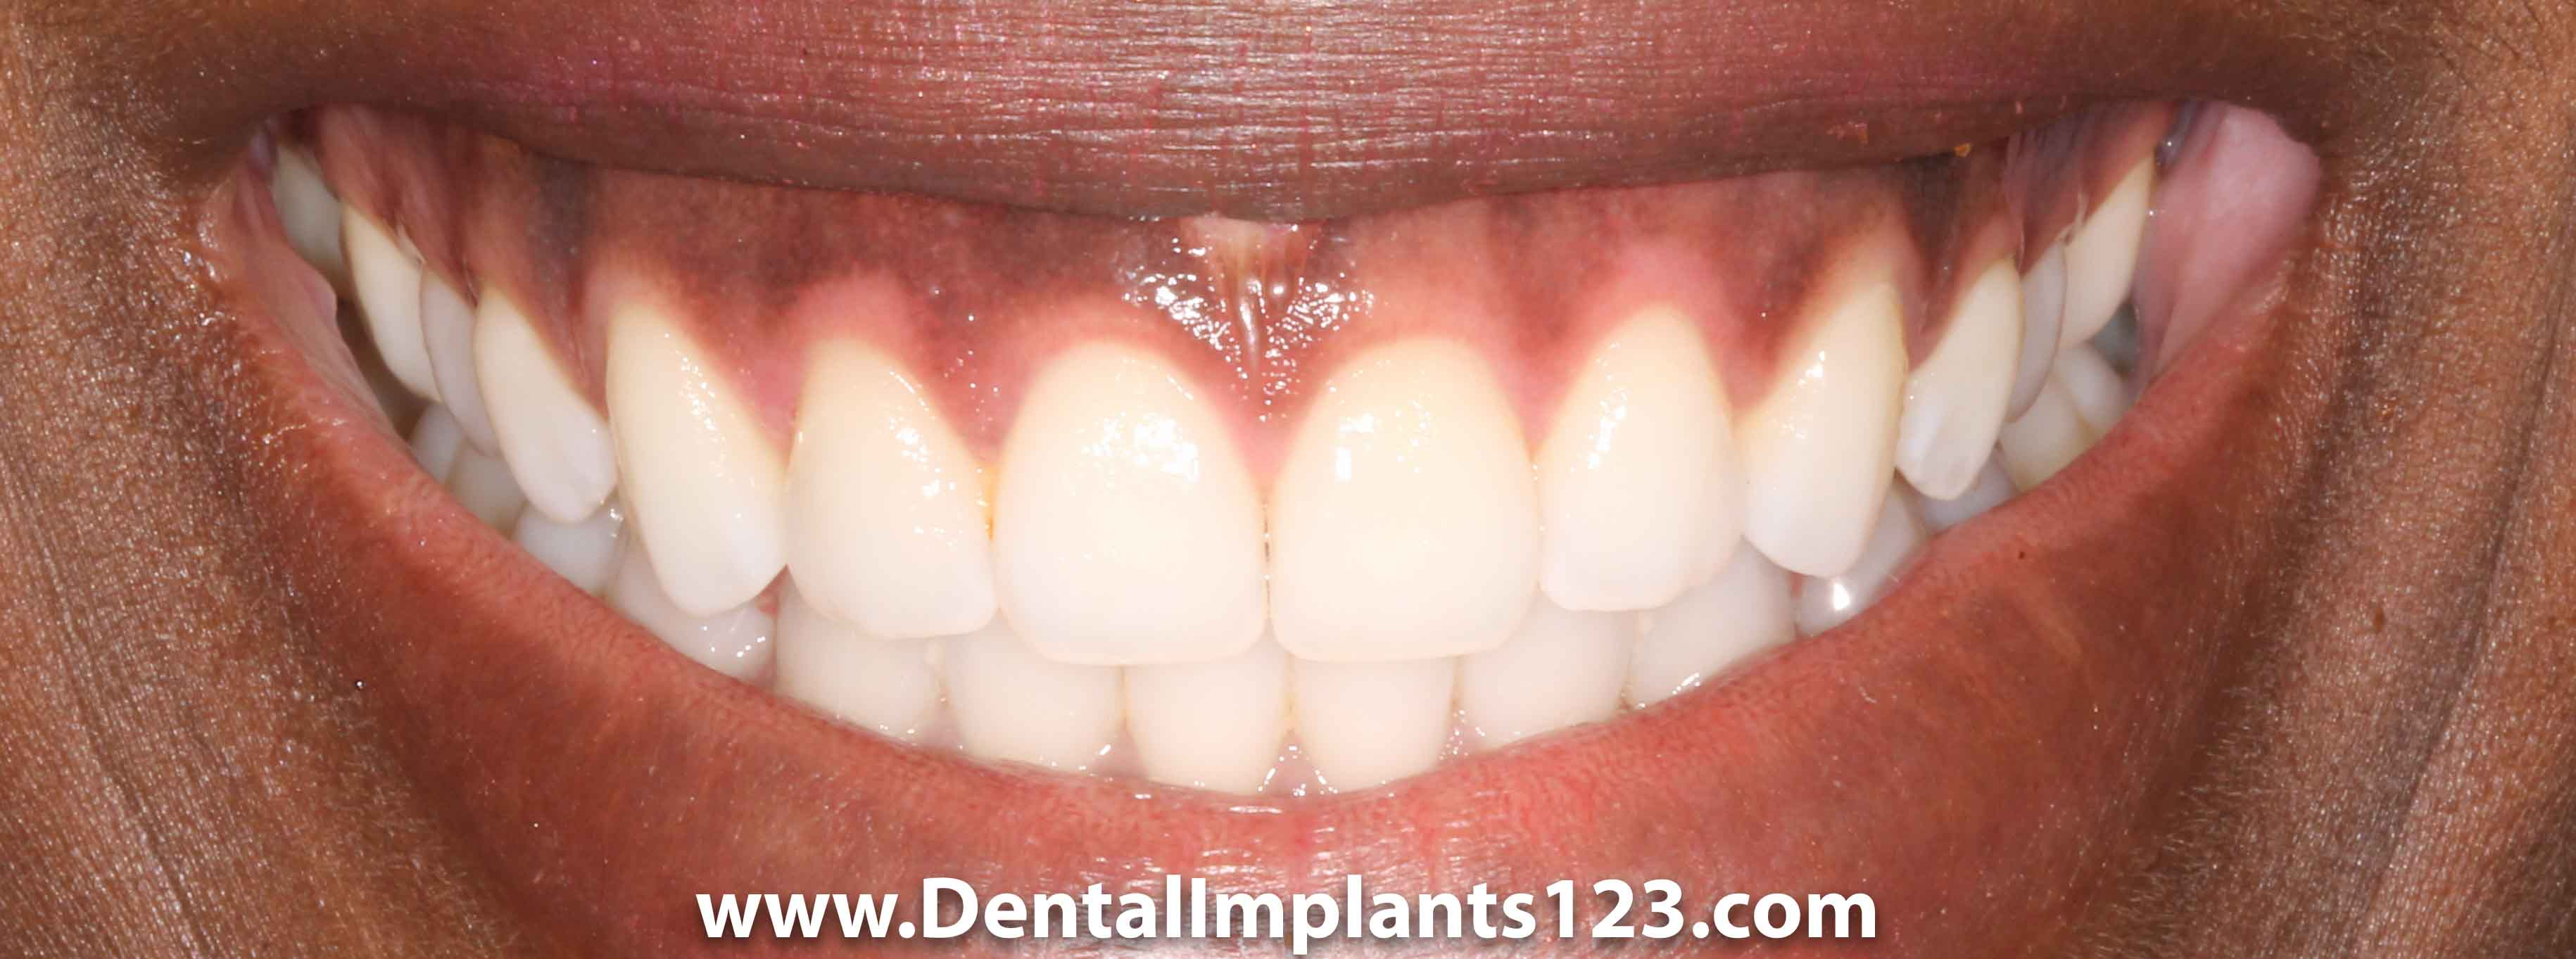 Dark Gums – Can They Be Changed? | Dental Implants